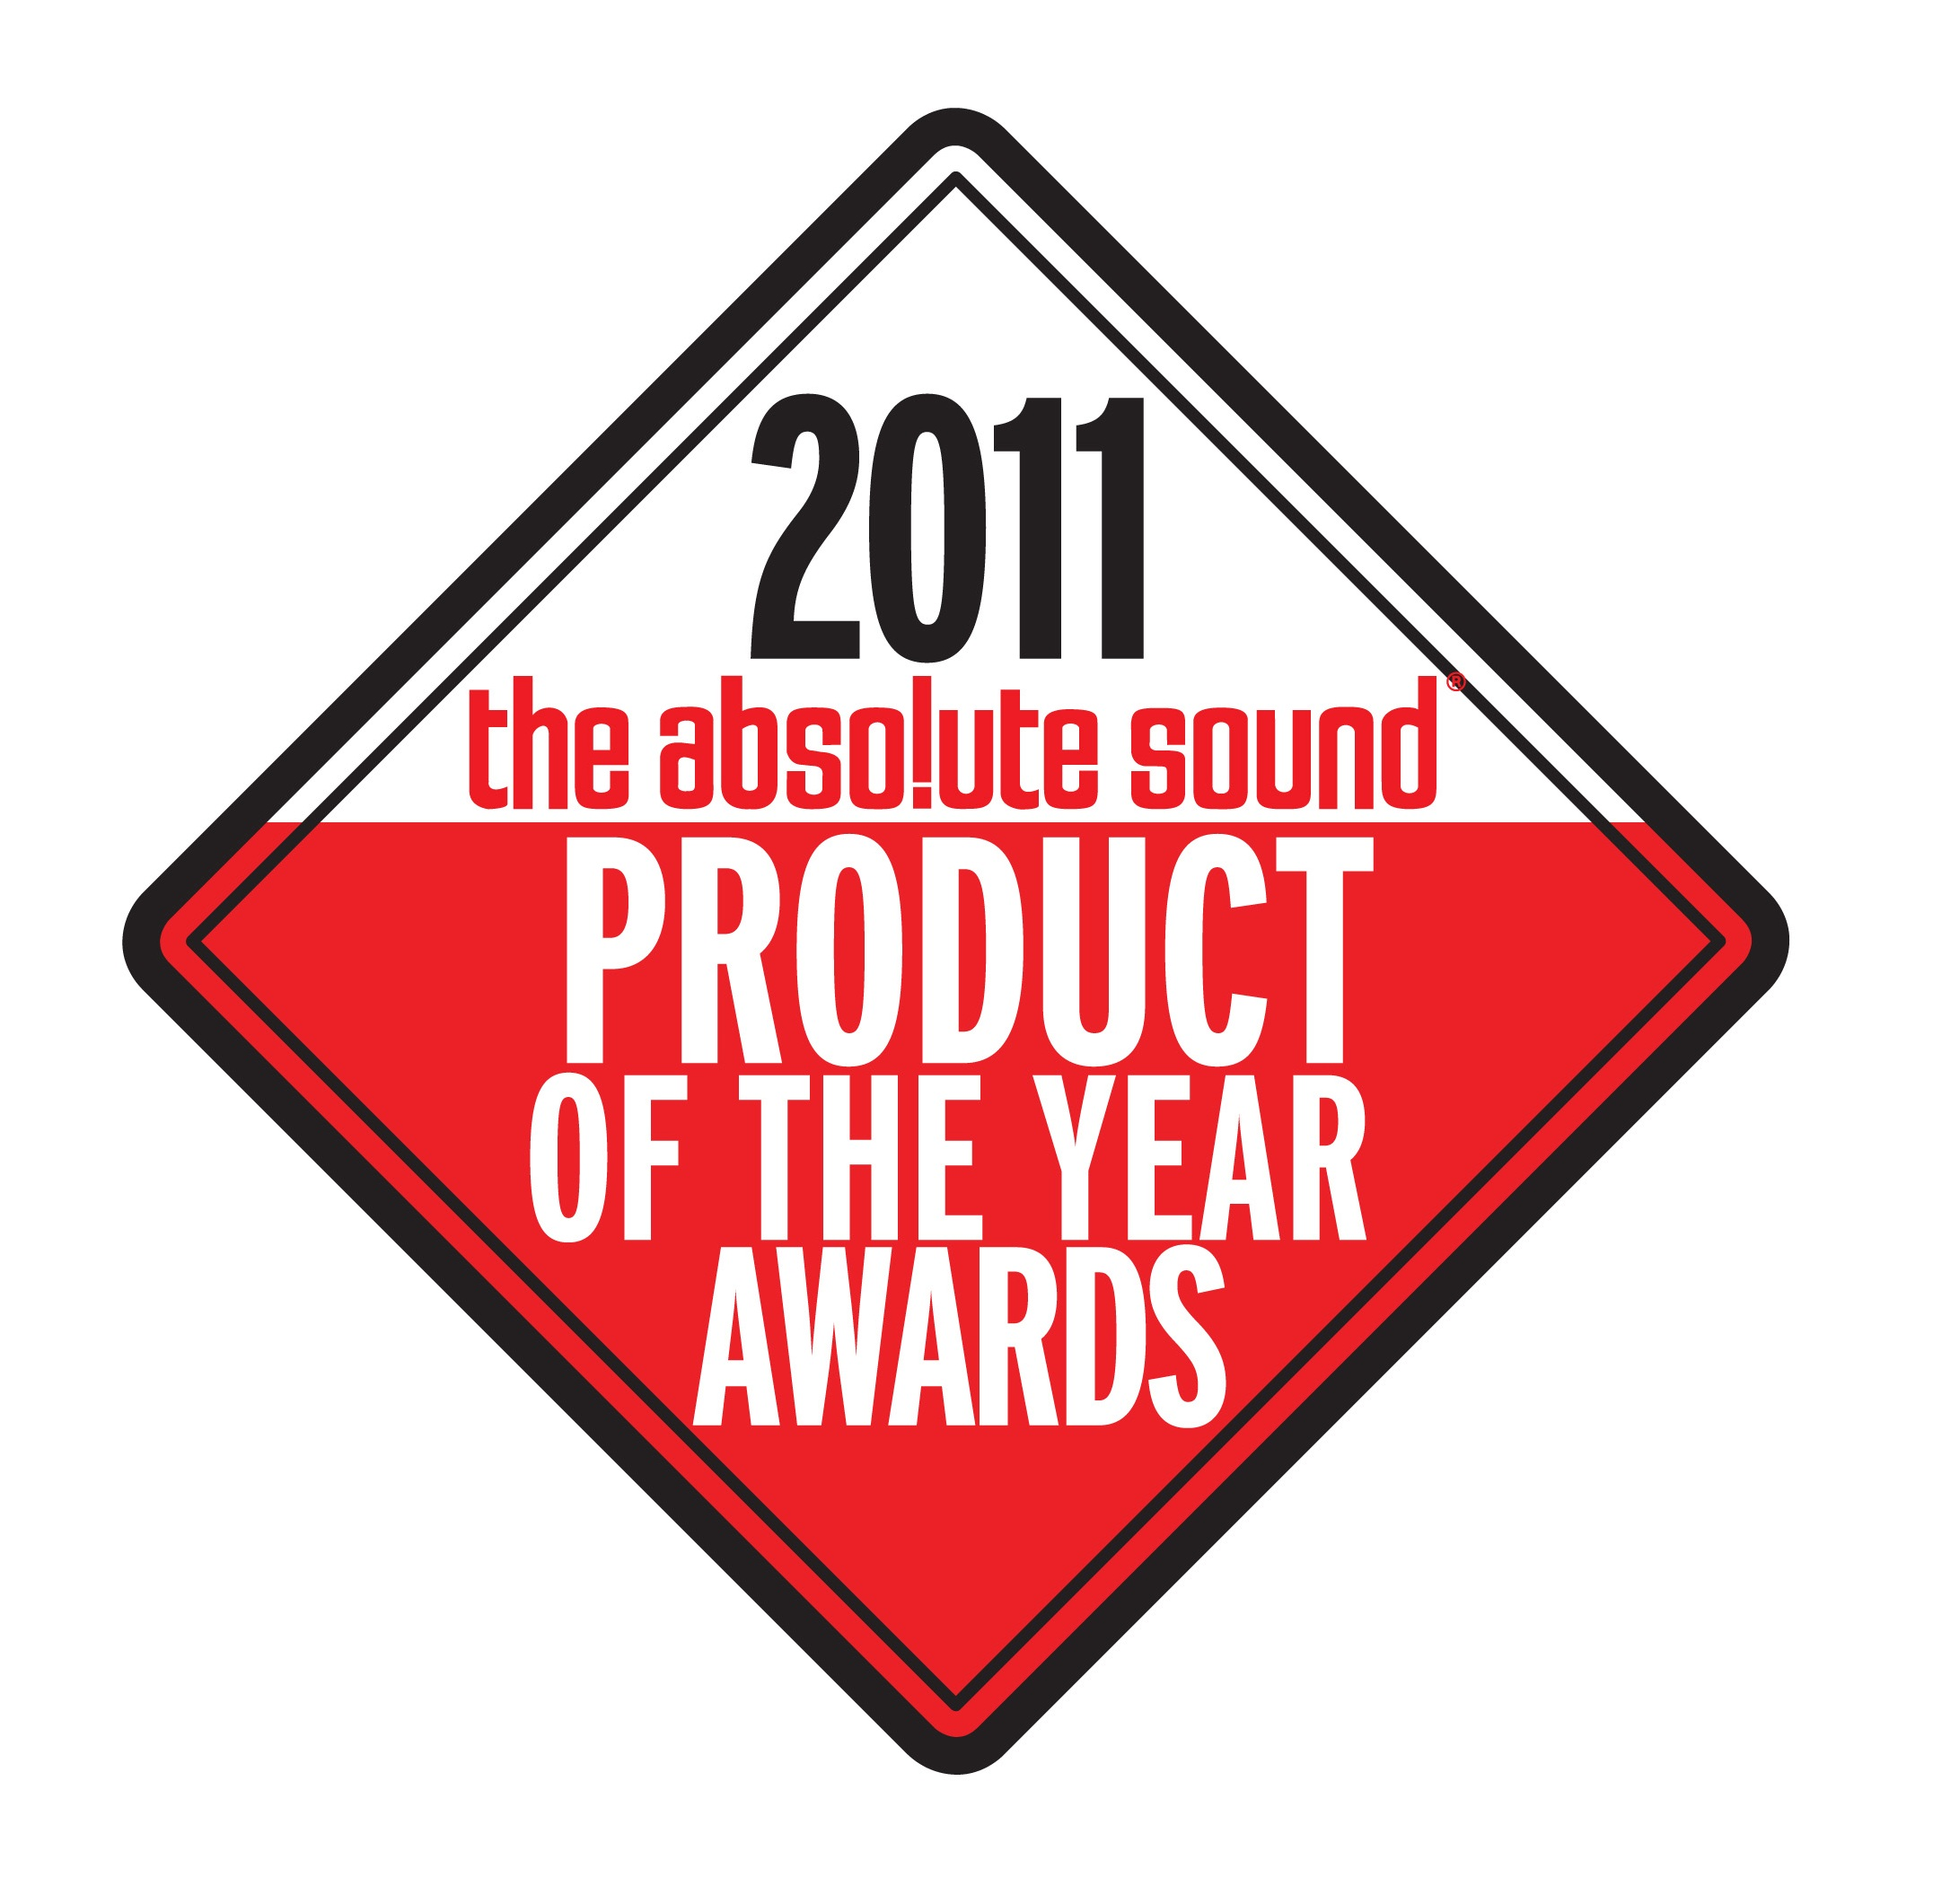 The Absolute Sound 2011 Product of the Year